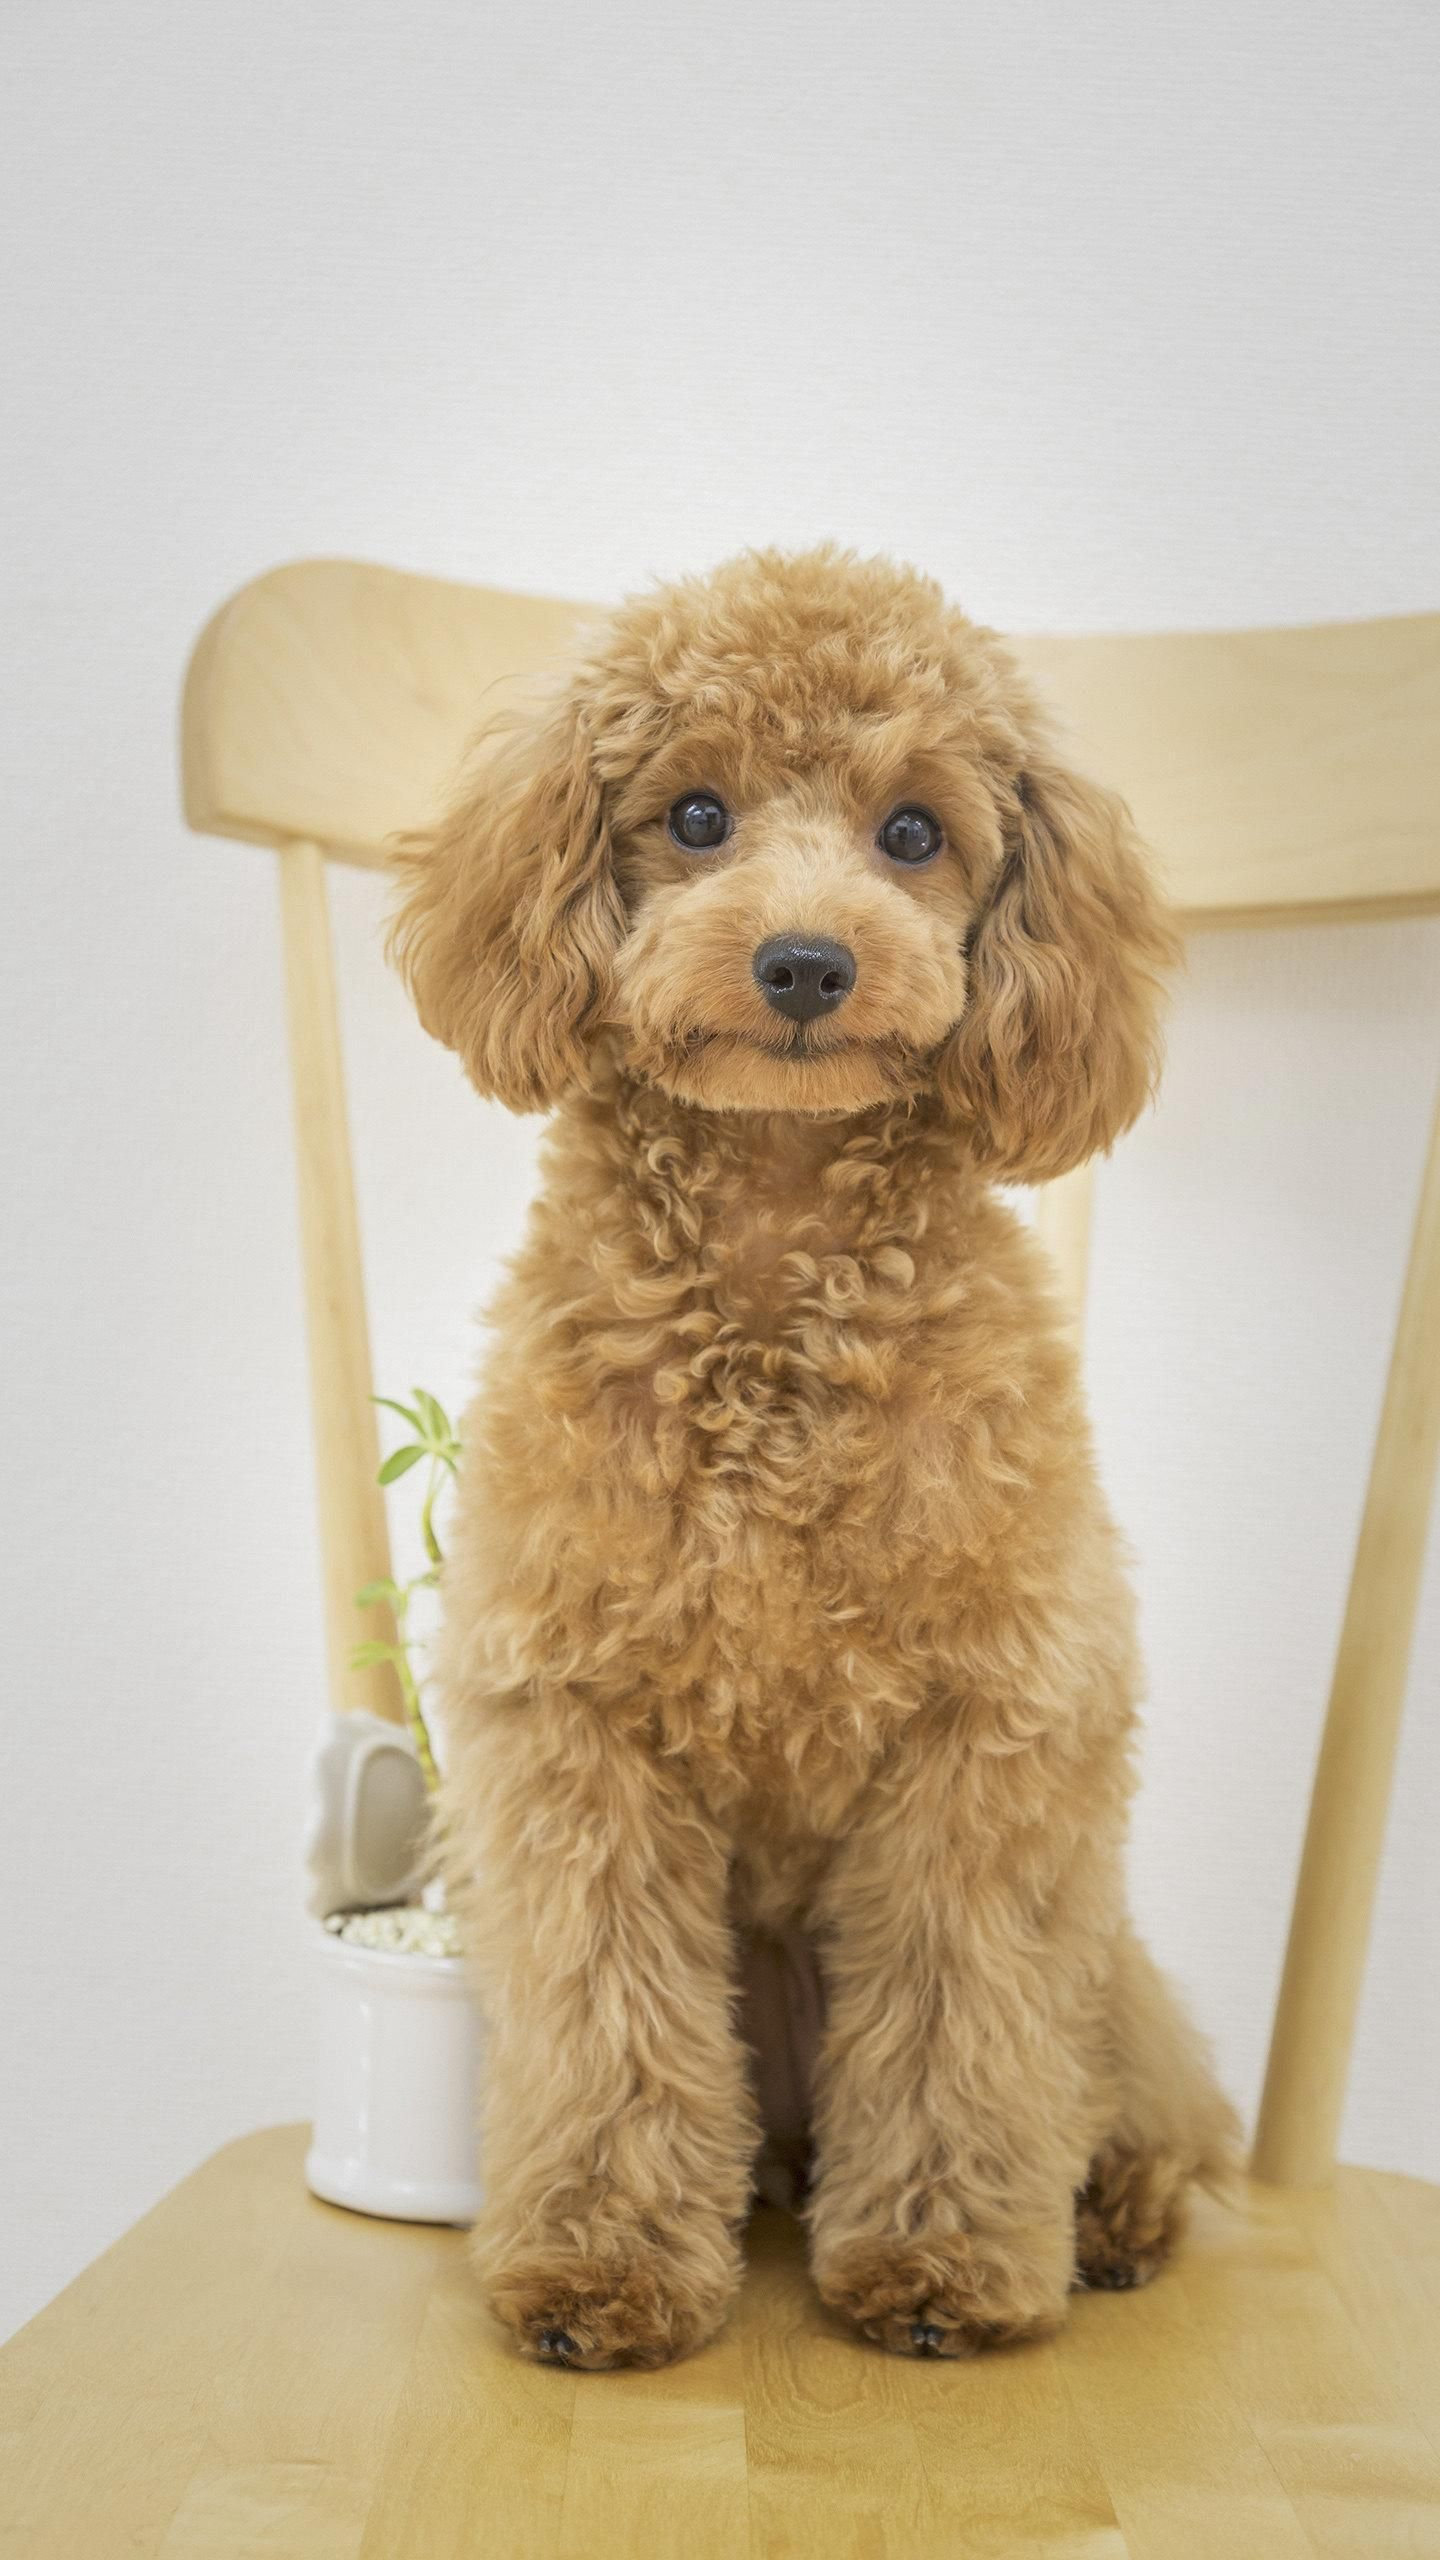 Poodle A Dog With Thick Curly Hair Natural Actively Smart And